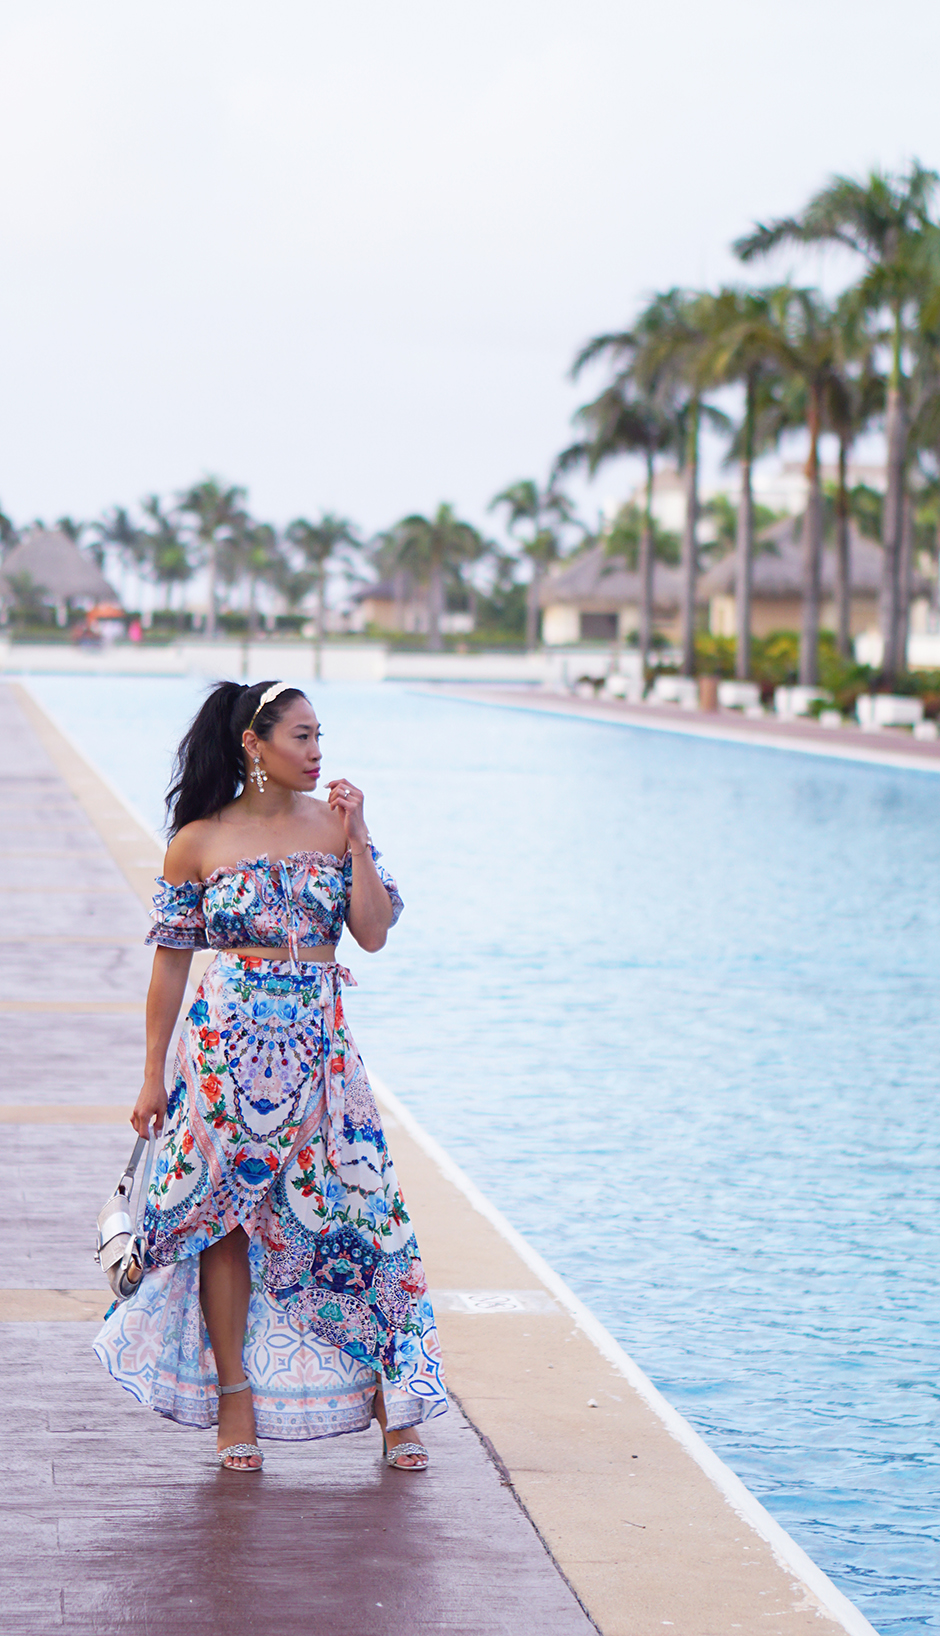 Printed Bardo Set - Travel Tips - Making the Most of an All Inclusive Resort and Holiday #dolcegabbana #inspiration #outfitideas #scarfprint #printtrend #summeroutfit #outfitinspo #outfitideas #OOTD #resortwear #readytowear #streetstyle #beachstyle #outfitinspiration #fashionblogger #styleblogger #OOTN #outfitideas #styleideas #runwayinspired #fashion #streetfashion #travelinspo #travelideas #travel #puntacana #hardrock #travelwomen